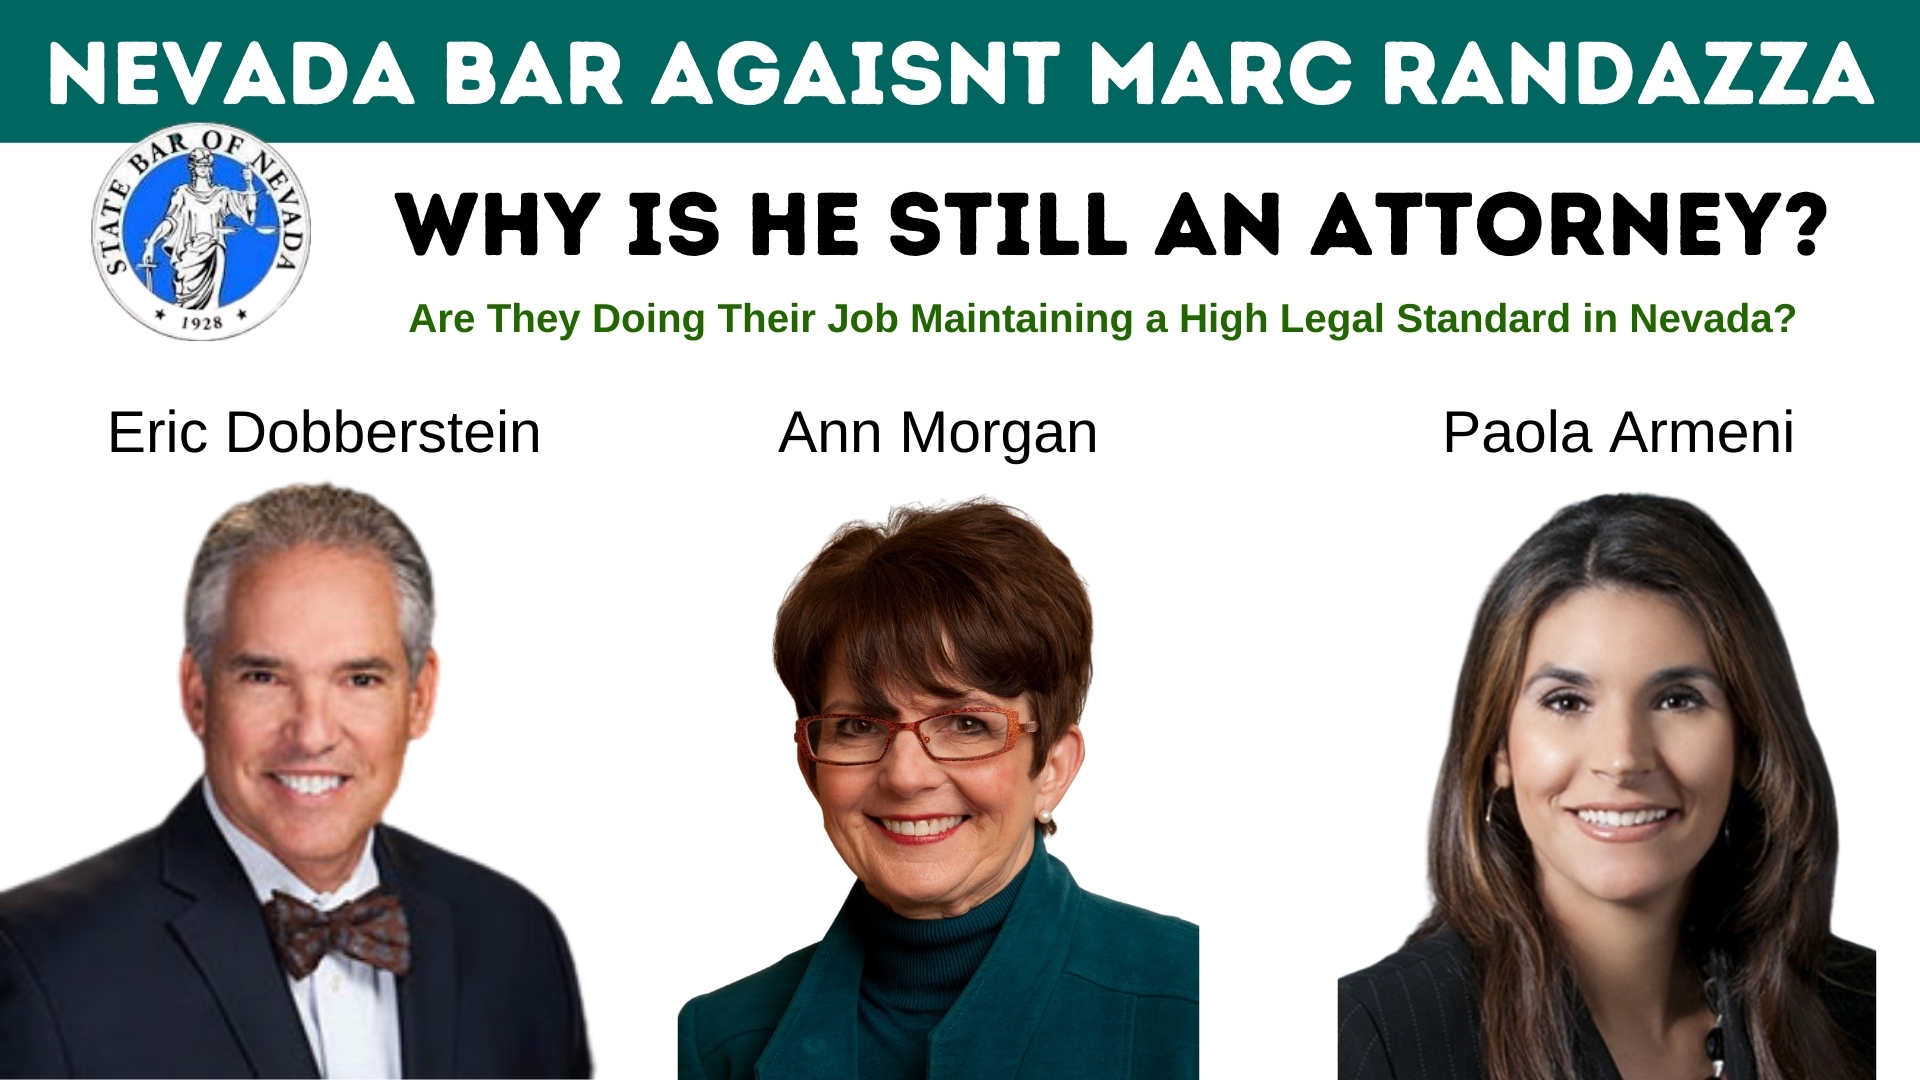 WHY STATE BAR OF NEVADA ALLOWS CORRUPT MARC RANDAZZA TO PRACTICE LAW?